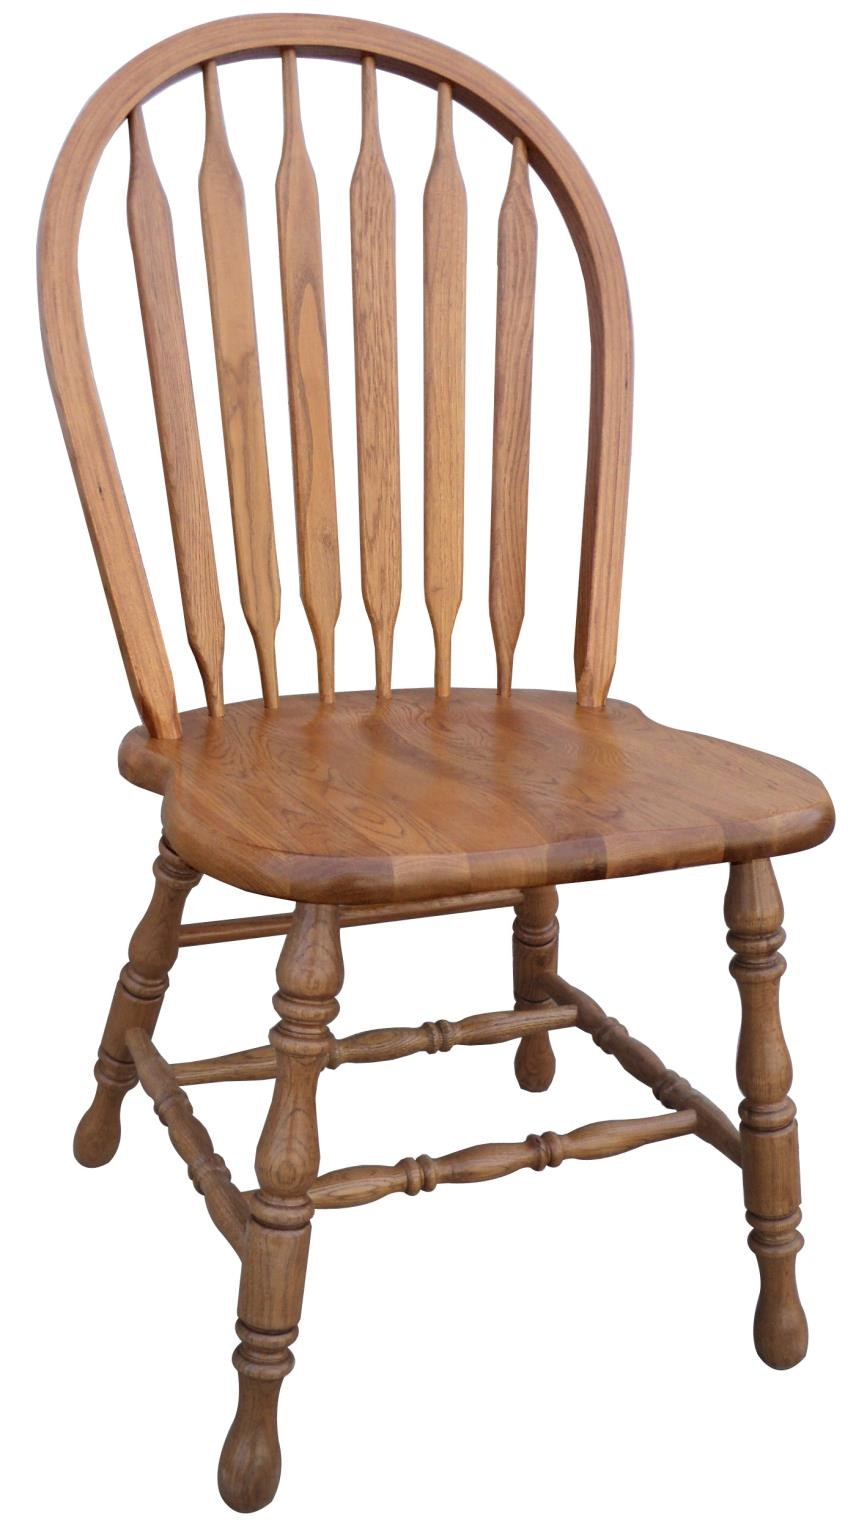 3147H. Country Arrow Back Side Chair